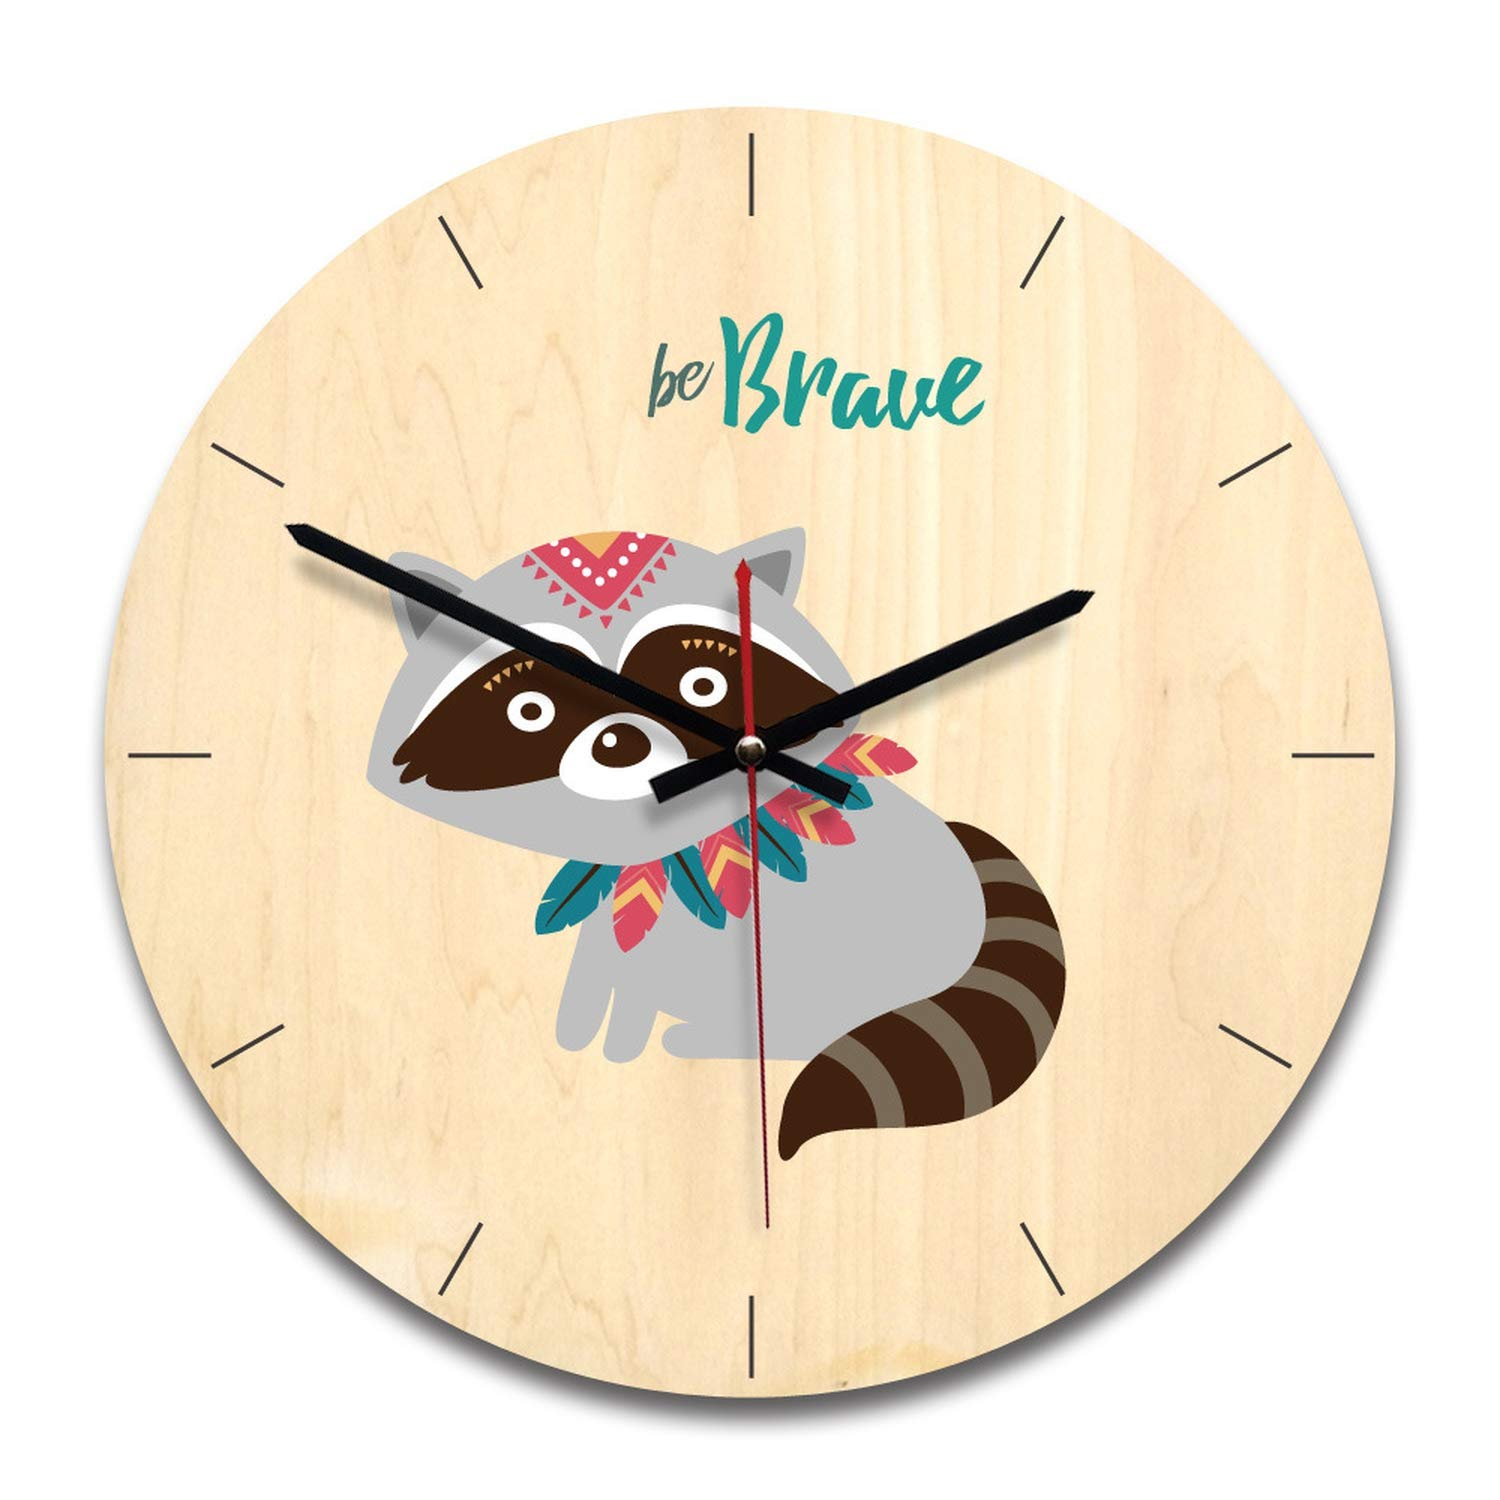 Amazoncom De24scx Wooden Wall Clock Home Decoration Cartoon Wall